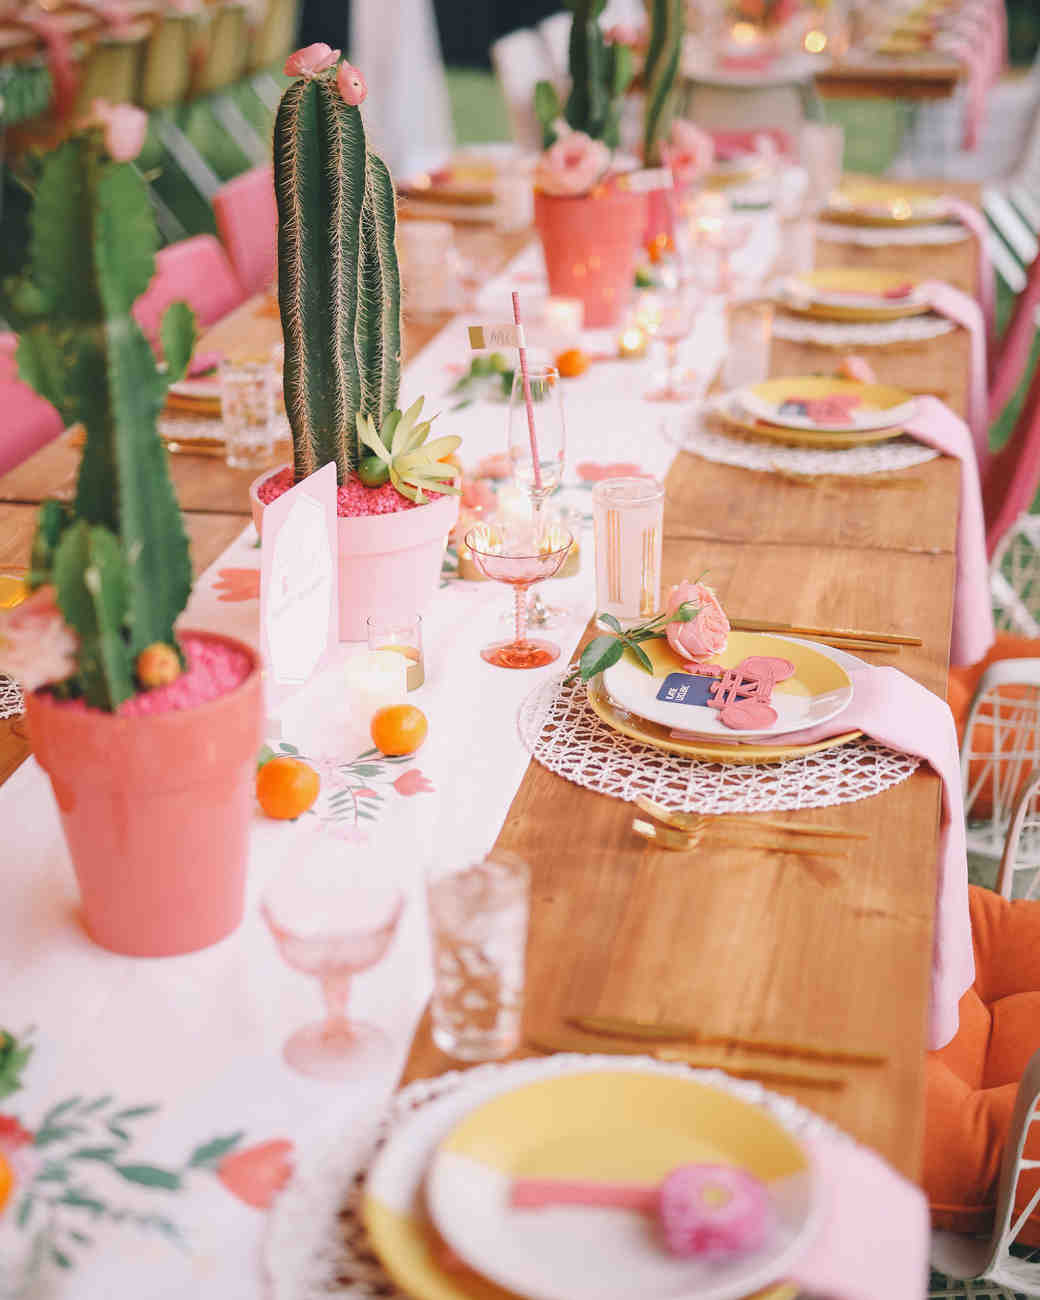 Wedding Table Decorations: 50 Wedding Centerpiece Ideas We Love